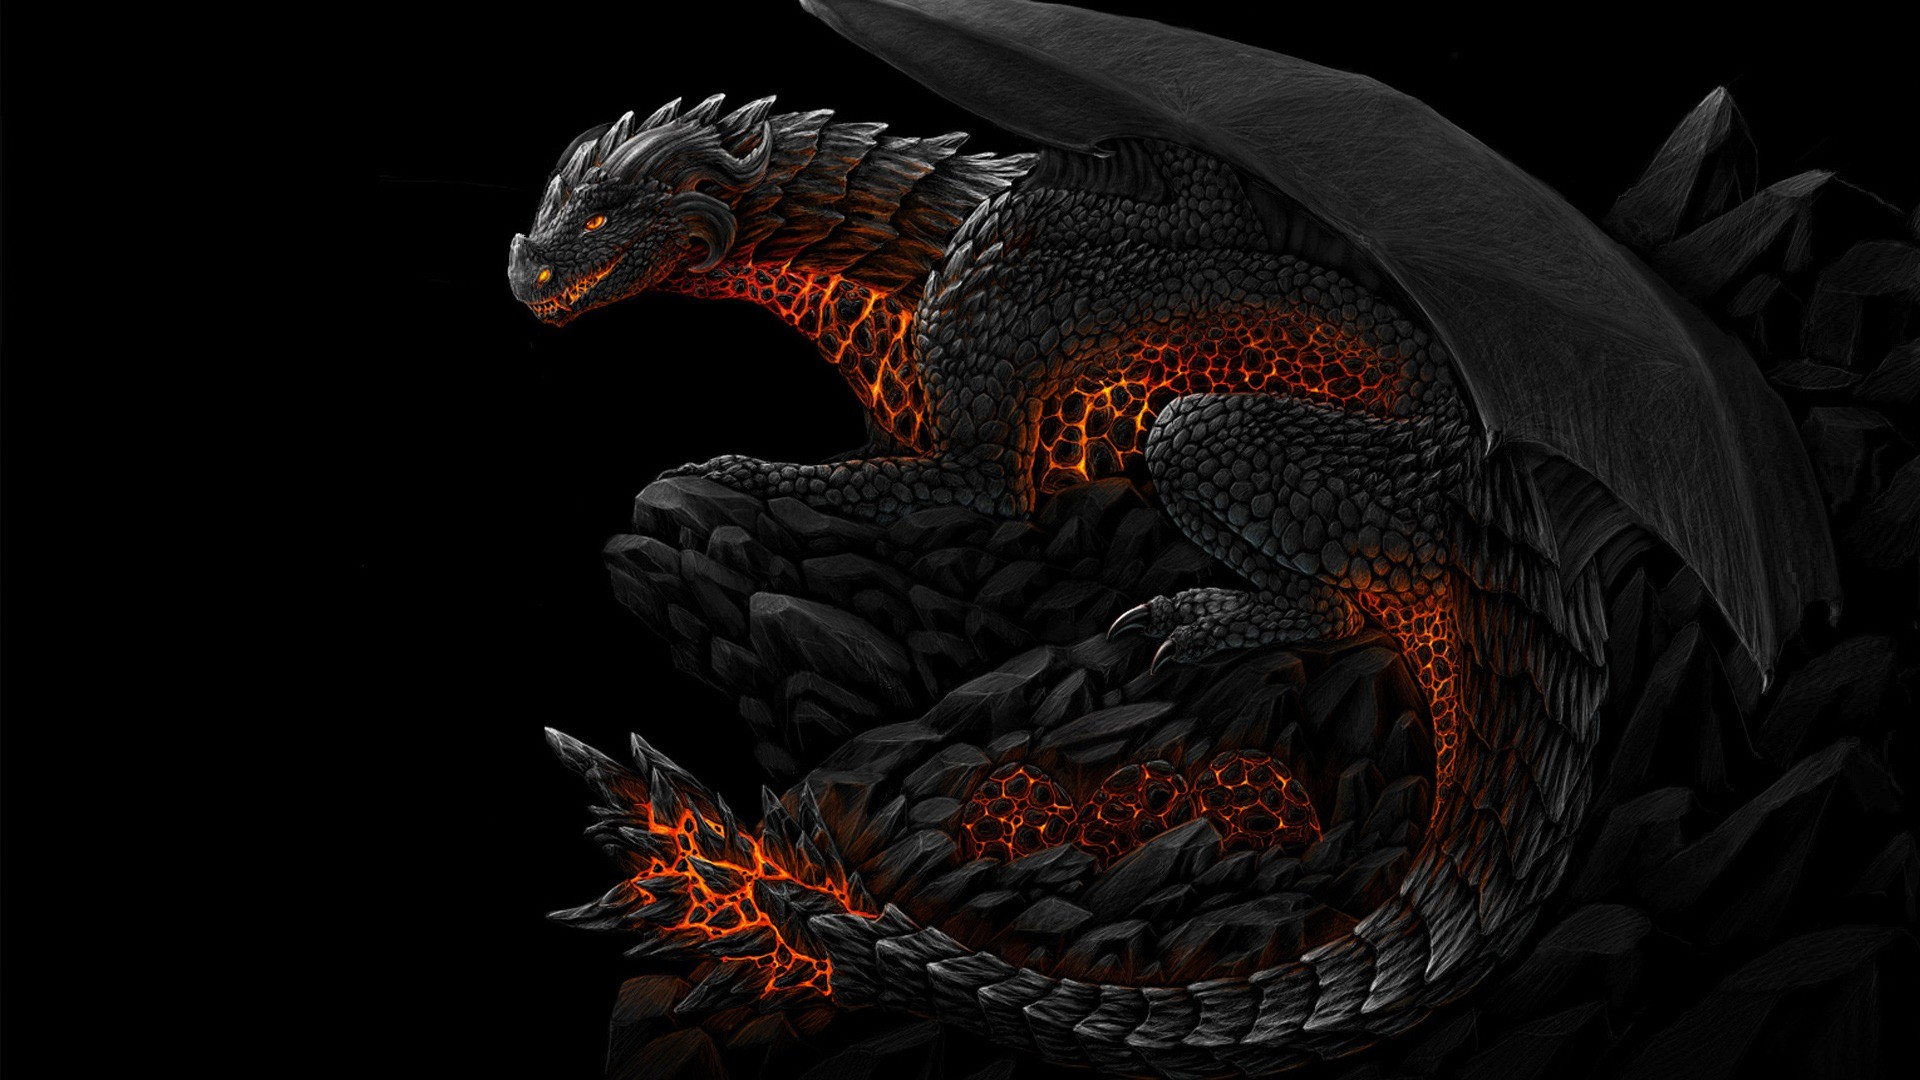 Dragons Wallpapers, Pictures, Images